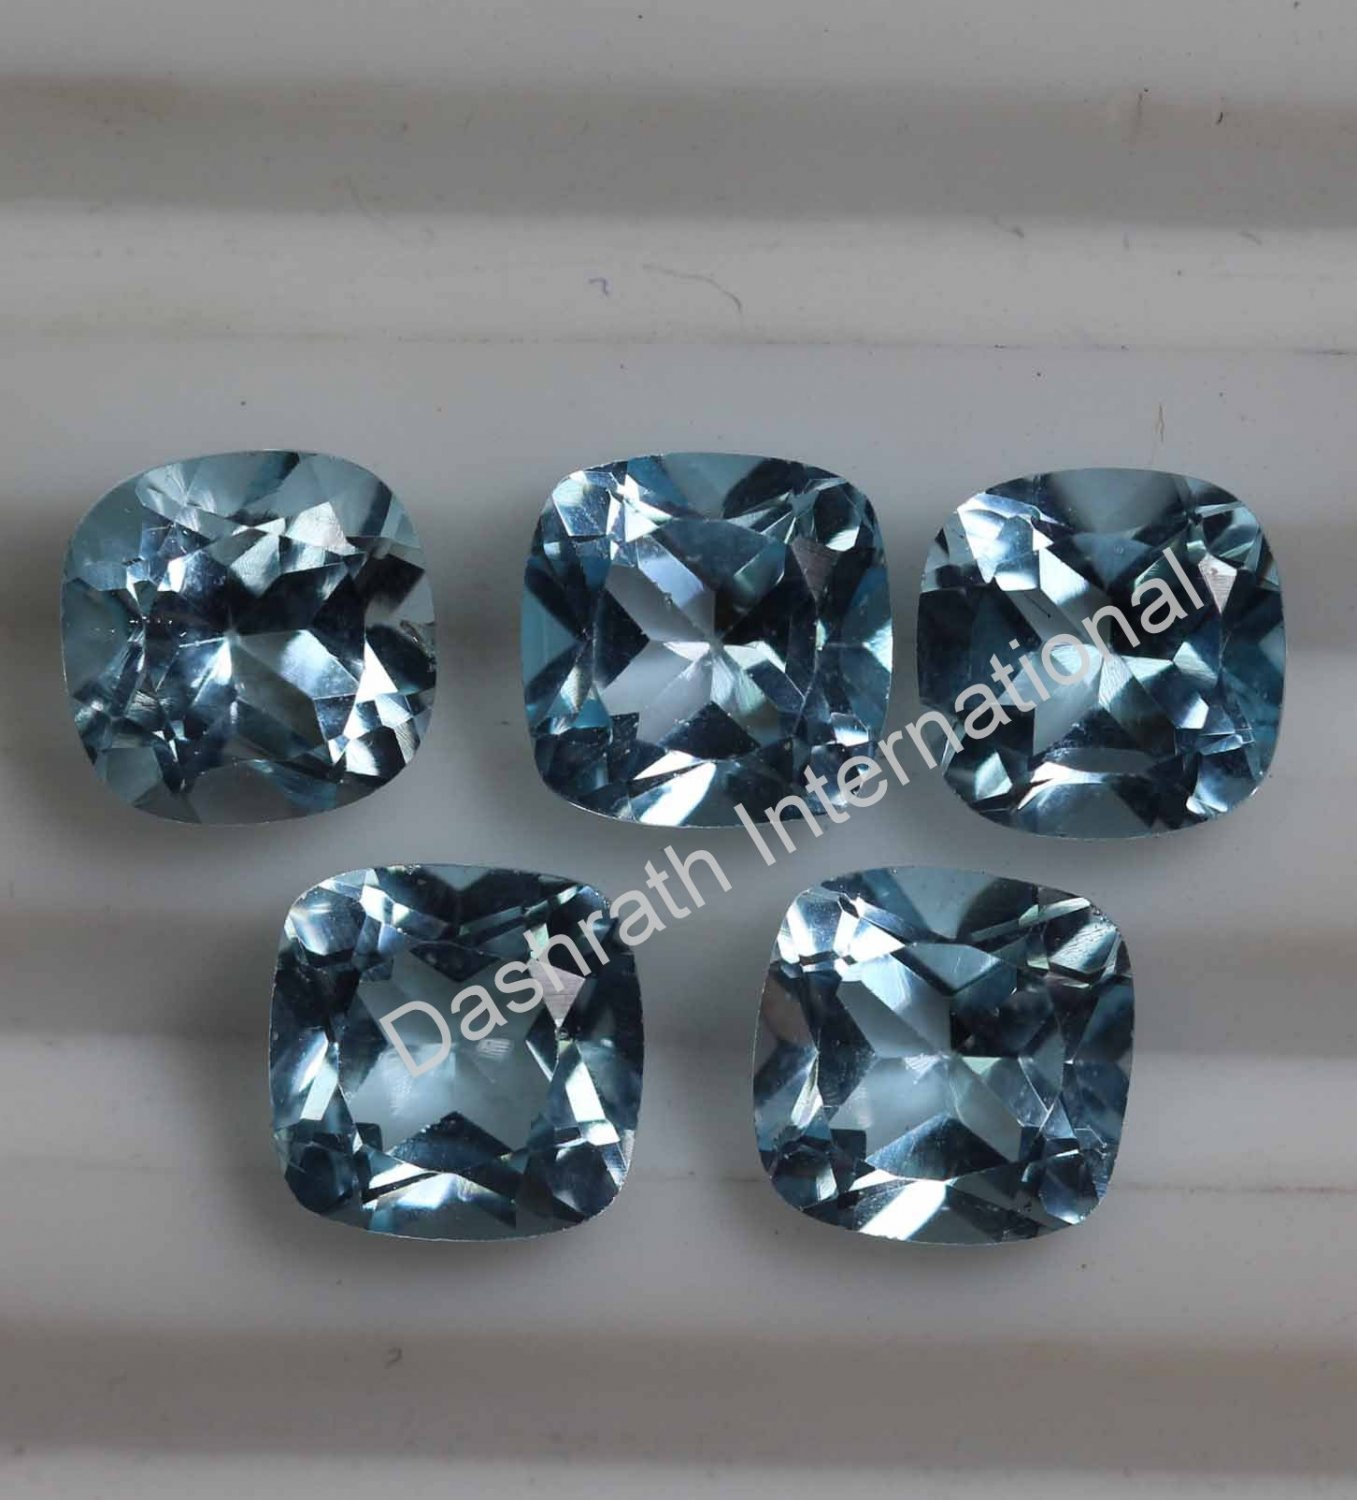 6mm Natural Sky Blue Topaz Faceted Cut Cushion 50 Pieces Lot Top Quality Loose Gemstone